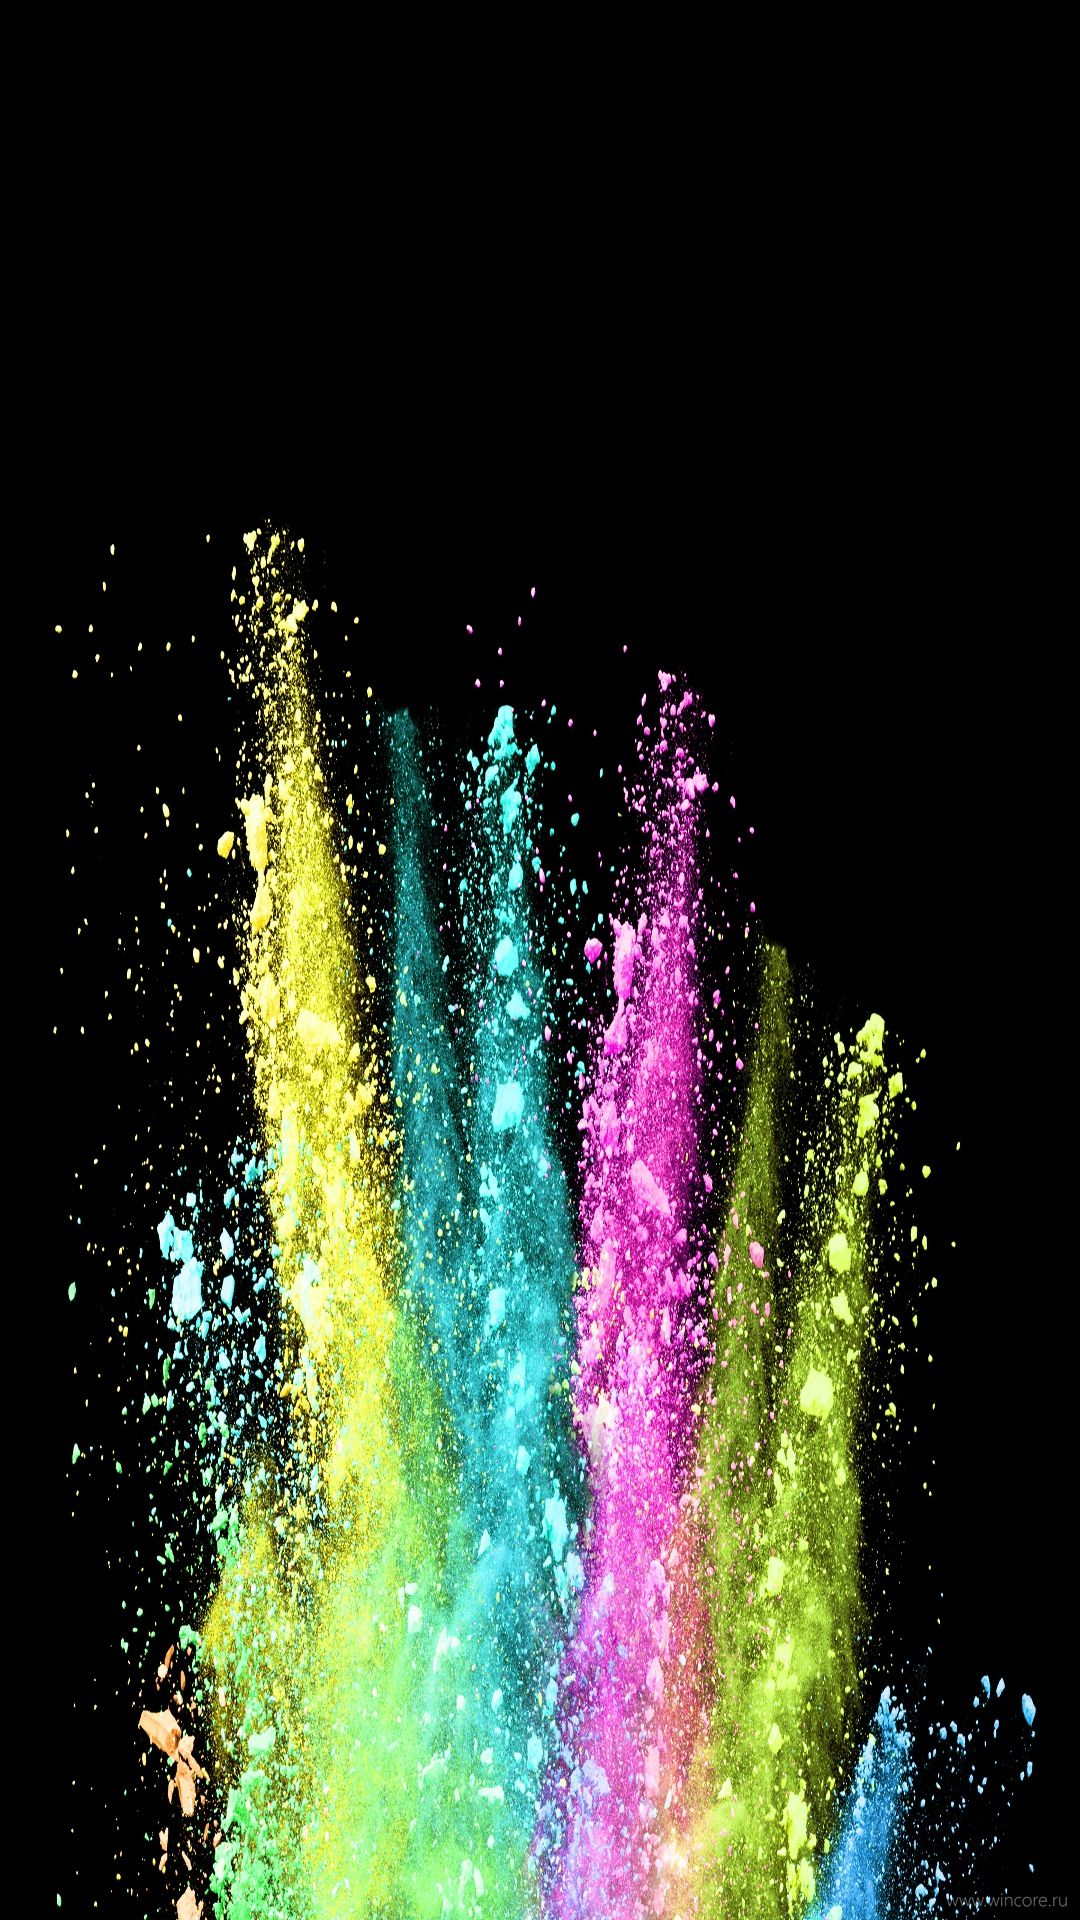 Download Mobile Wallpaper Colored Powder